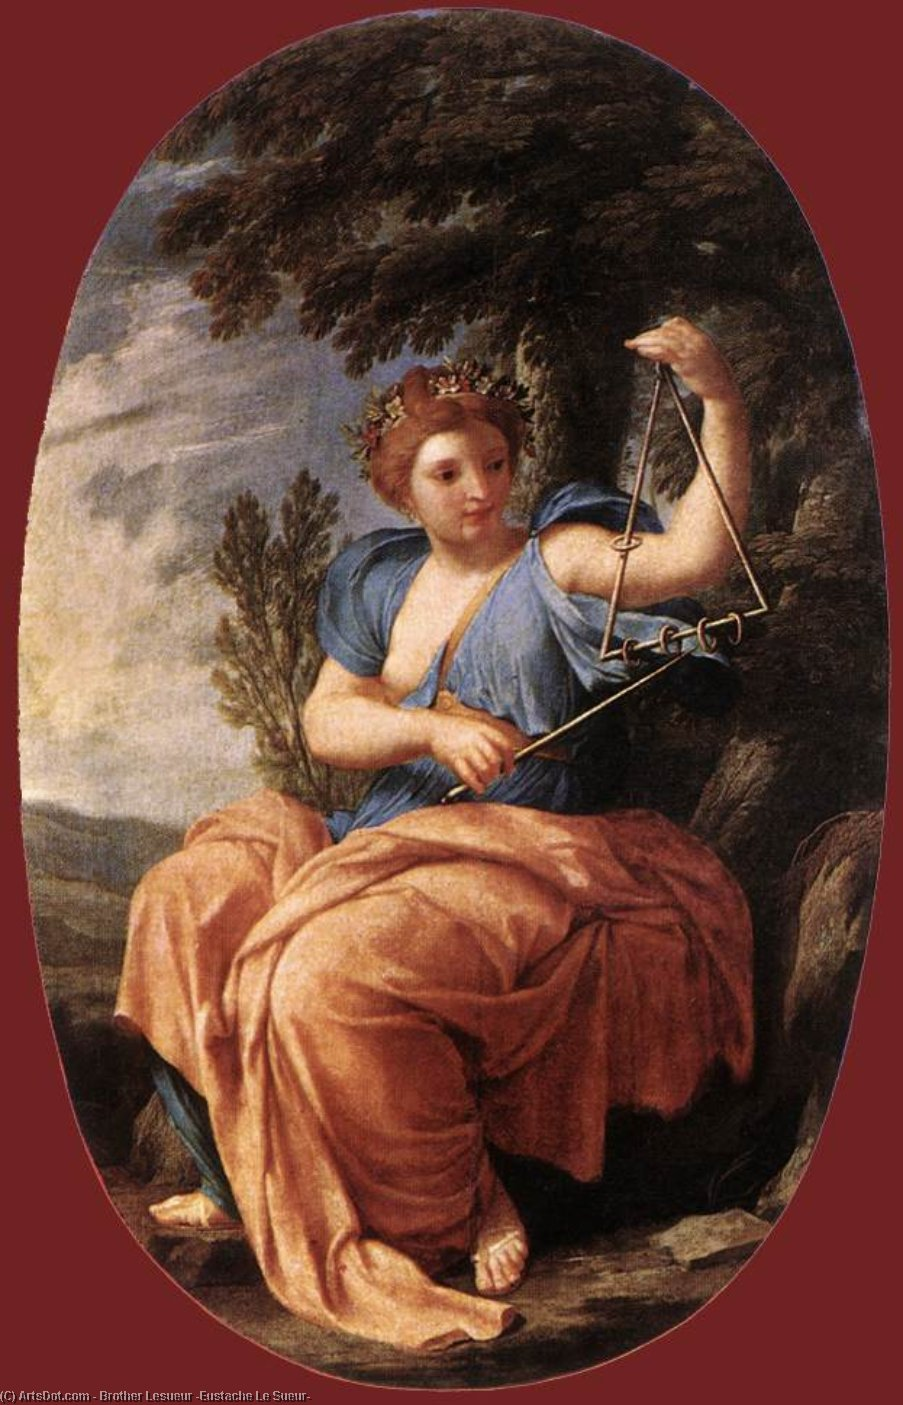 Wikioo.org - The Encyclopedia of Fine Arts - Painting, Artwork by Brother Lesueur (Eustache Le Sueur) - The Muse Terpsichore